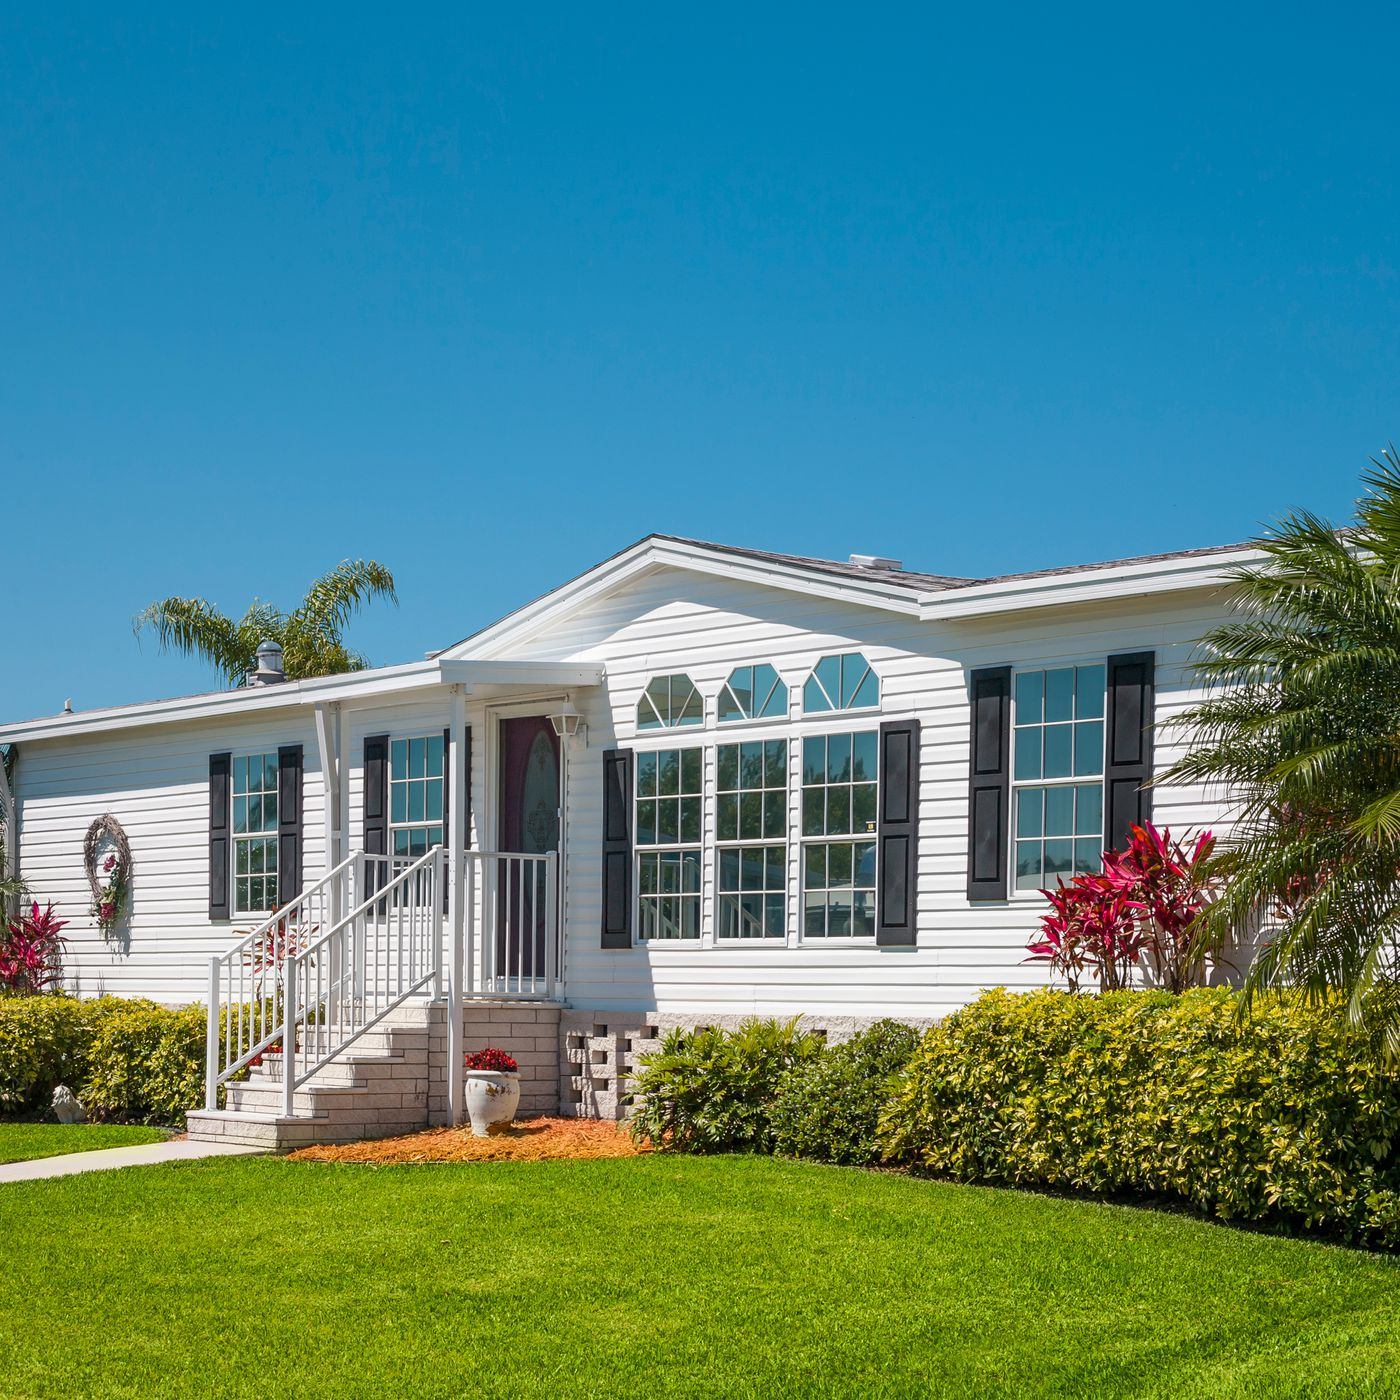 Best Mobile Home Warranty Protection Plans This Old House